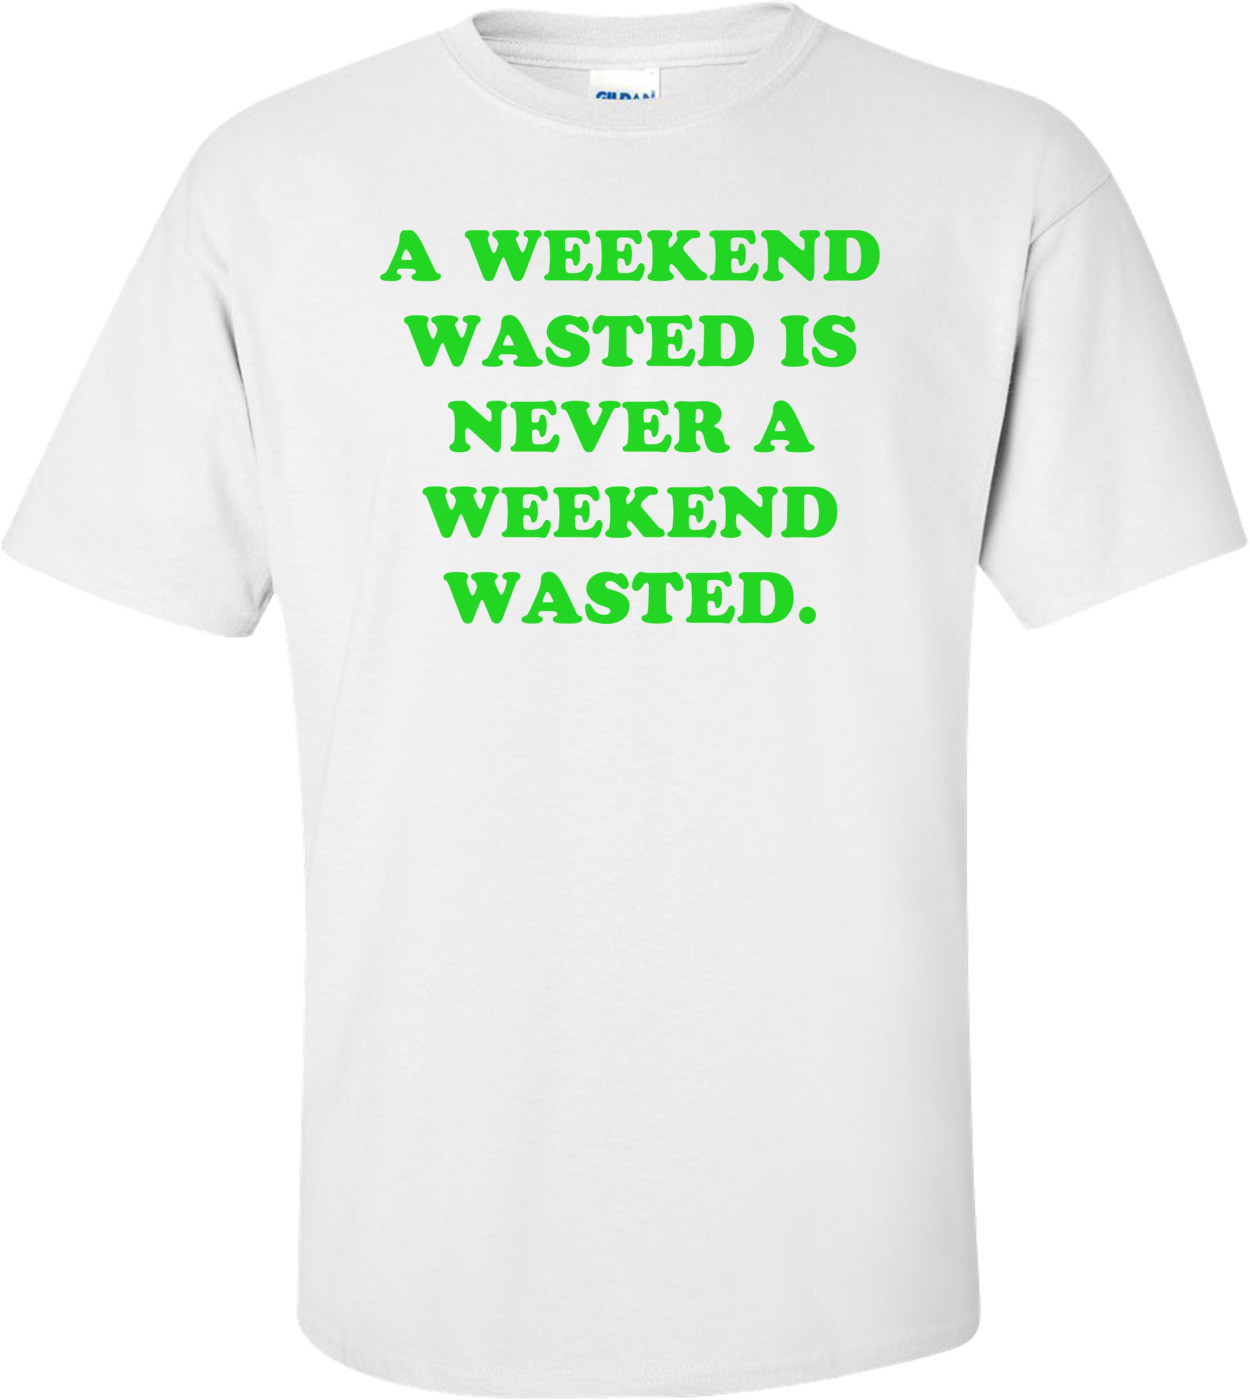 A WEEKEND WASTED IS NEVER A WEEKEND WASTED. Shirt